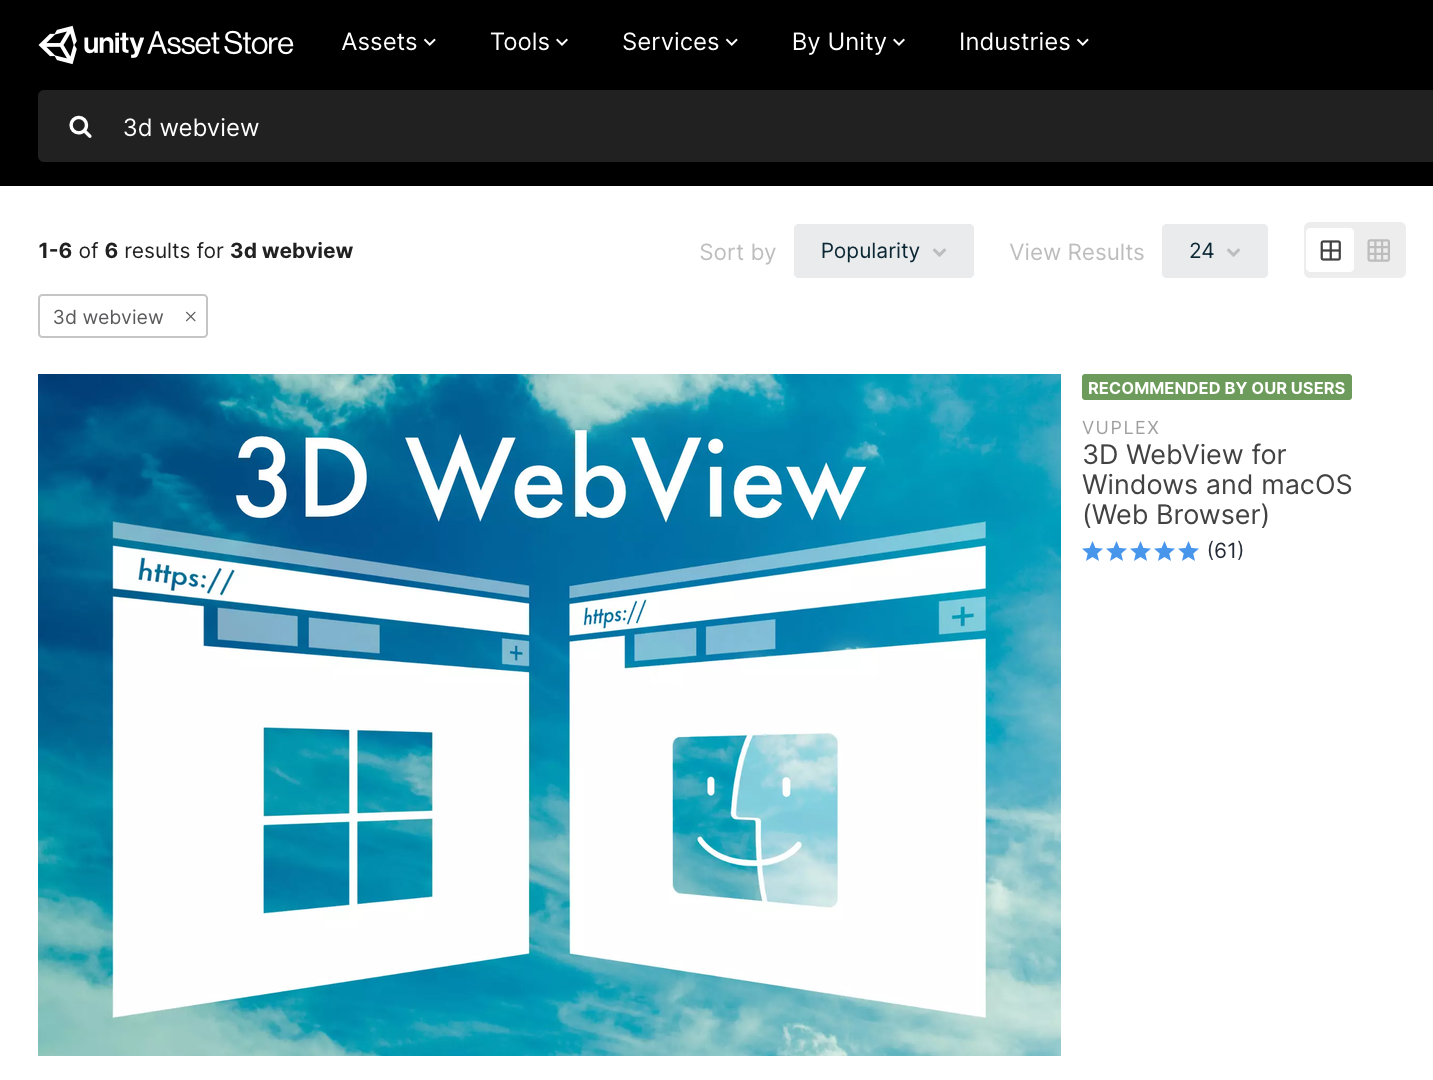 3D WebView in the Asset Store